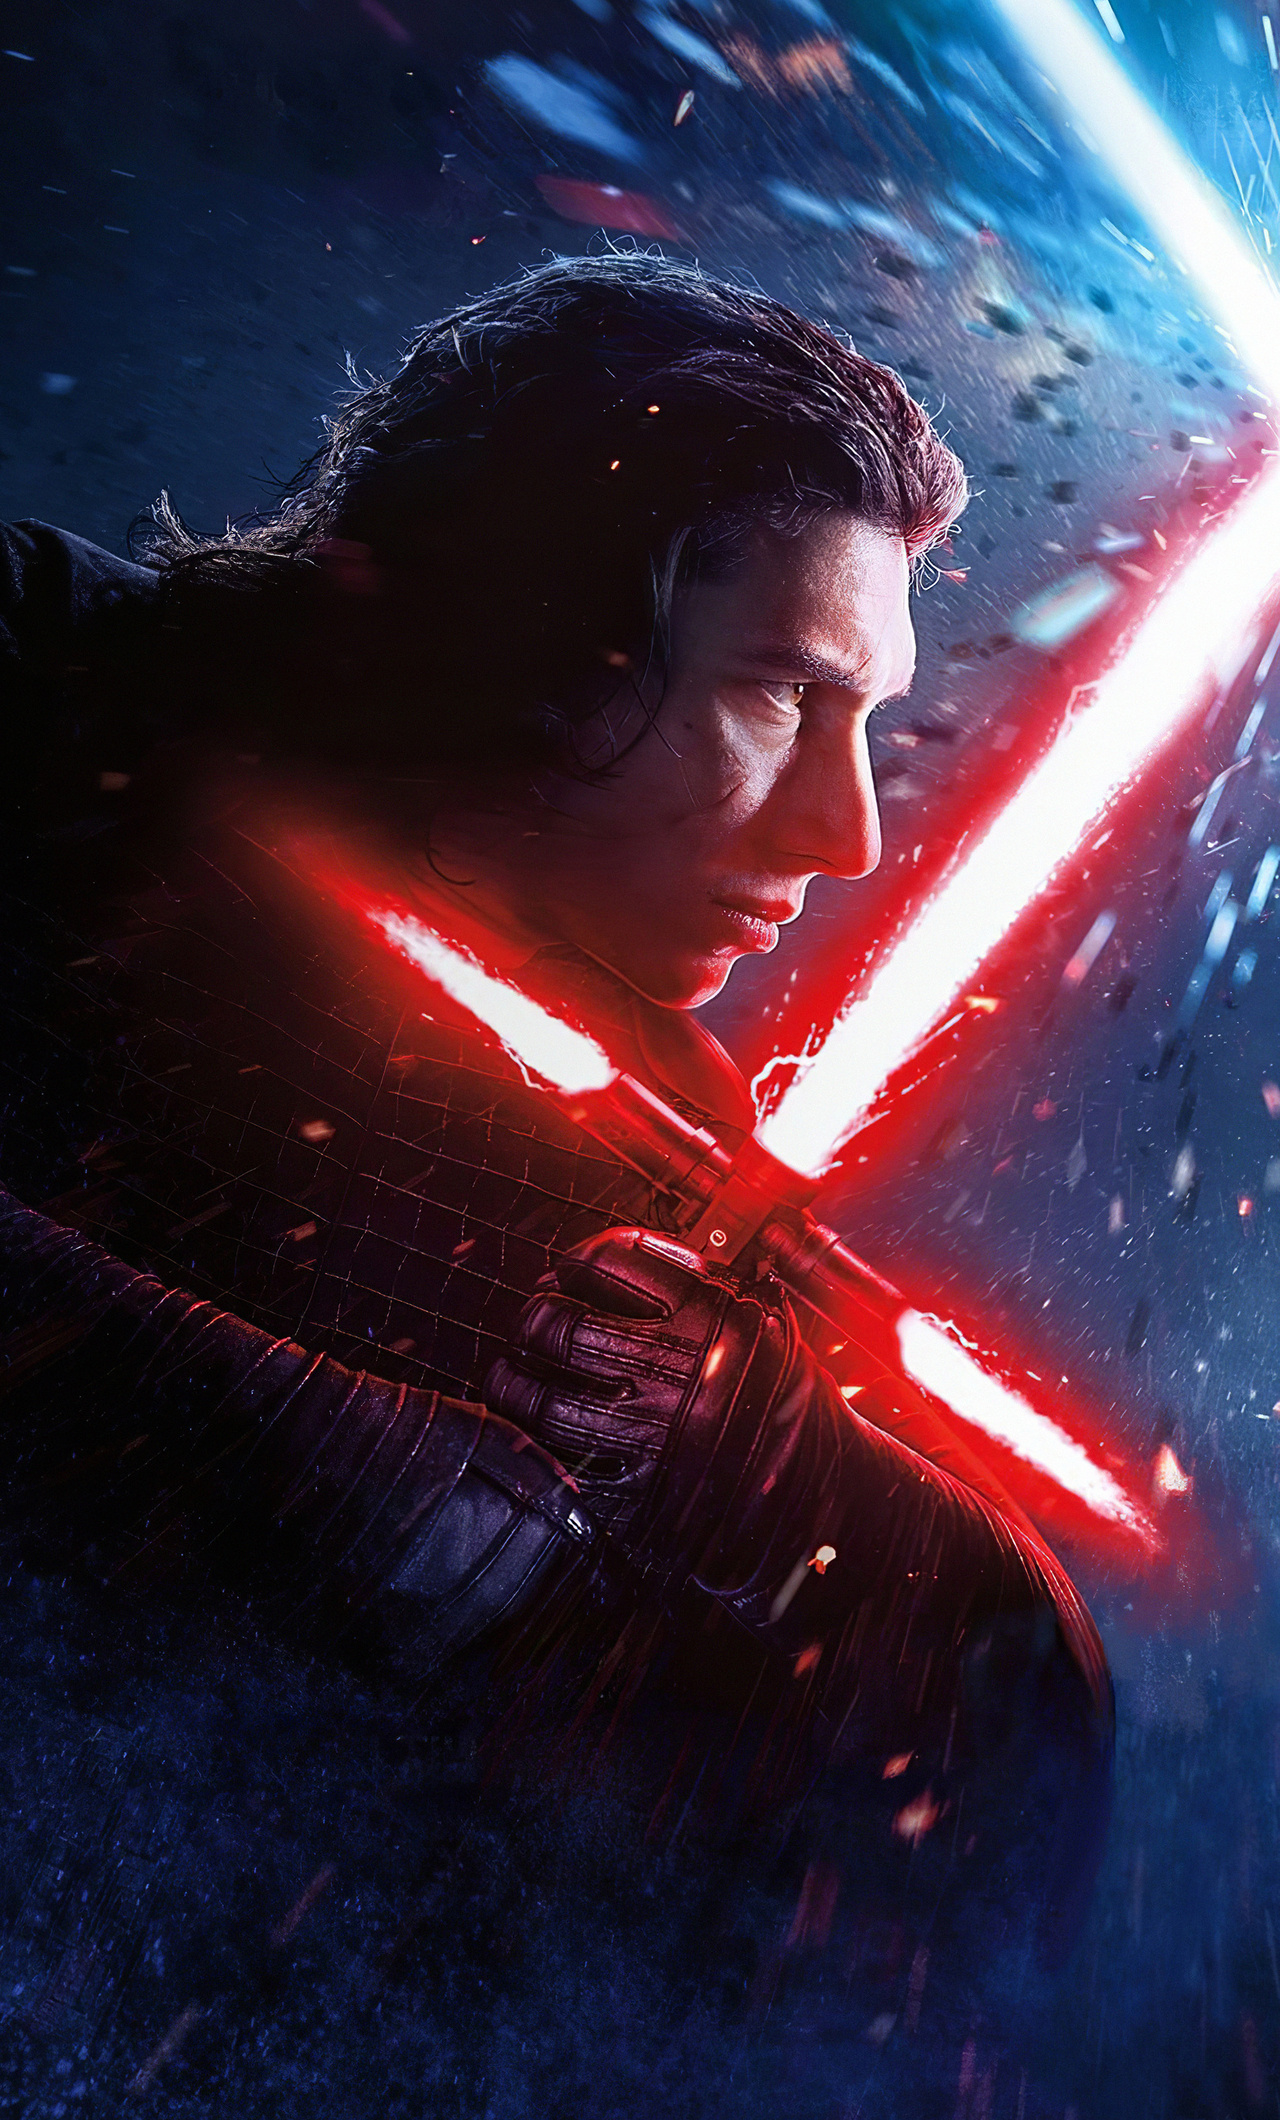 star-wars-the-rise-of-skywalker-poster-4k-2019-na.jpg